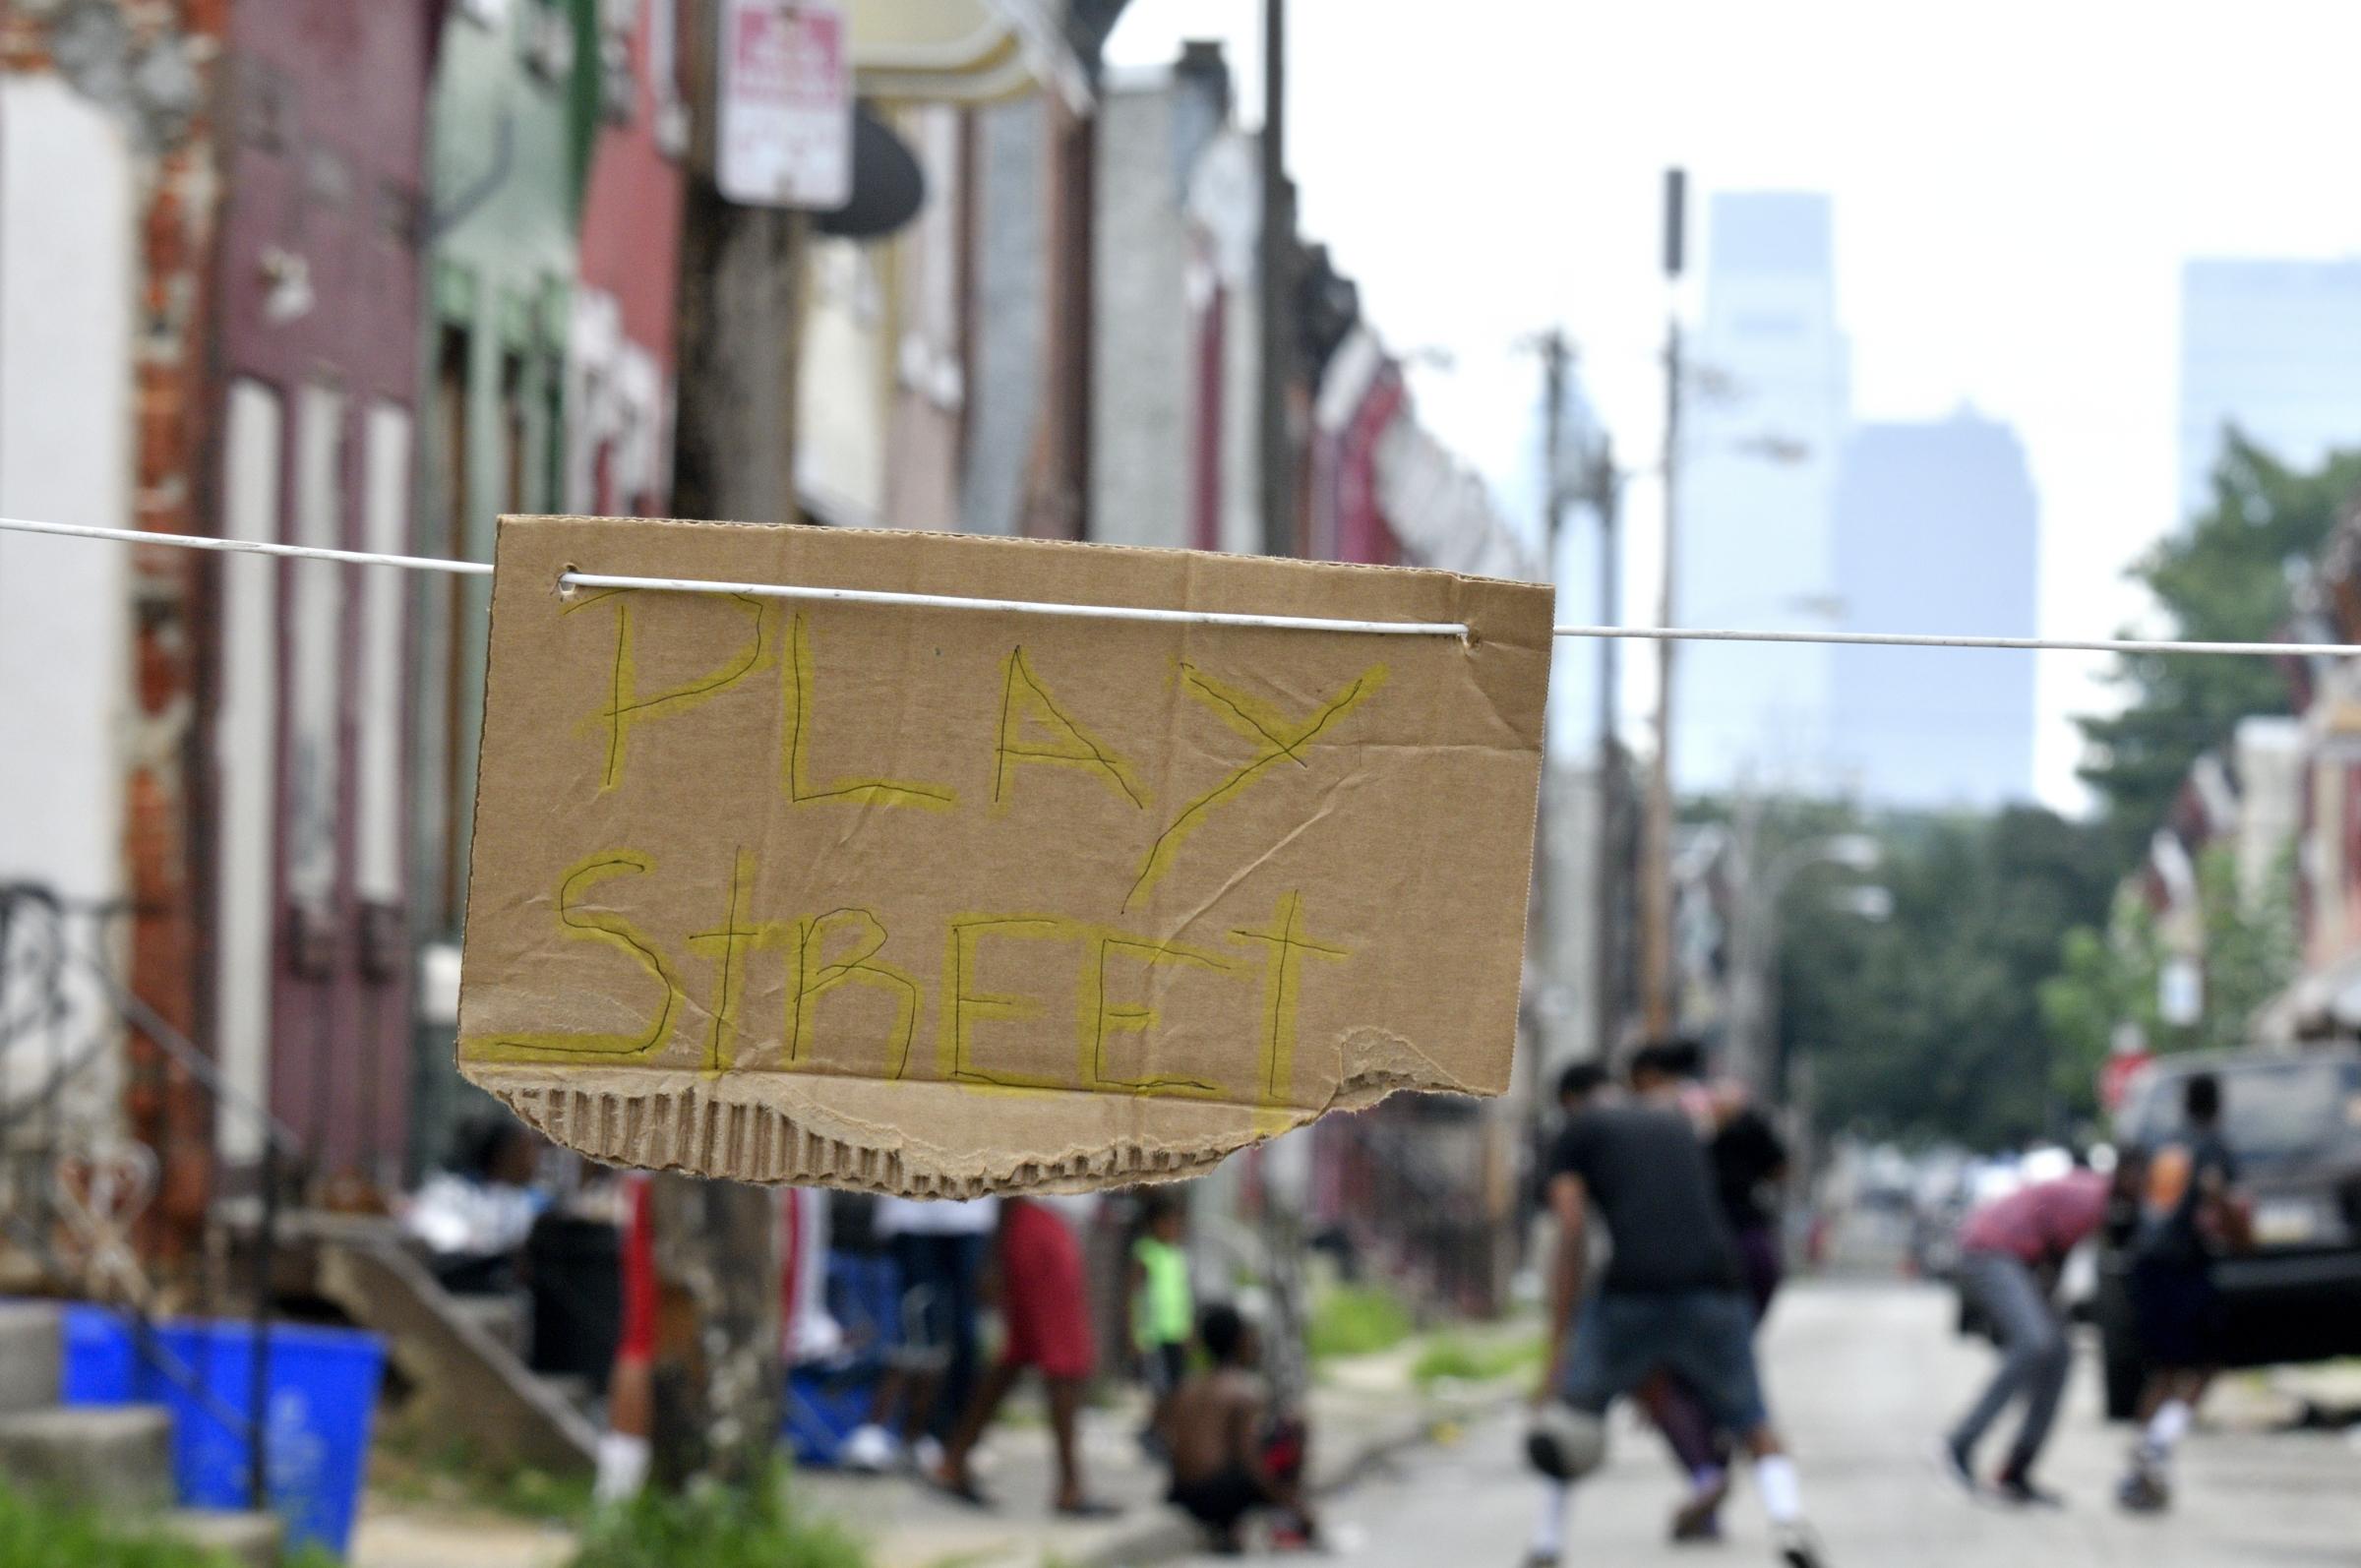 Small card board sign found on the north side of 2400 block of N. Bouvier Street, in North Philadelphia, PA, on August 7, 2018.